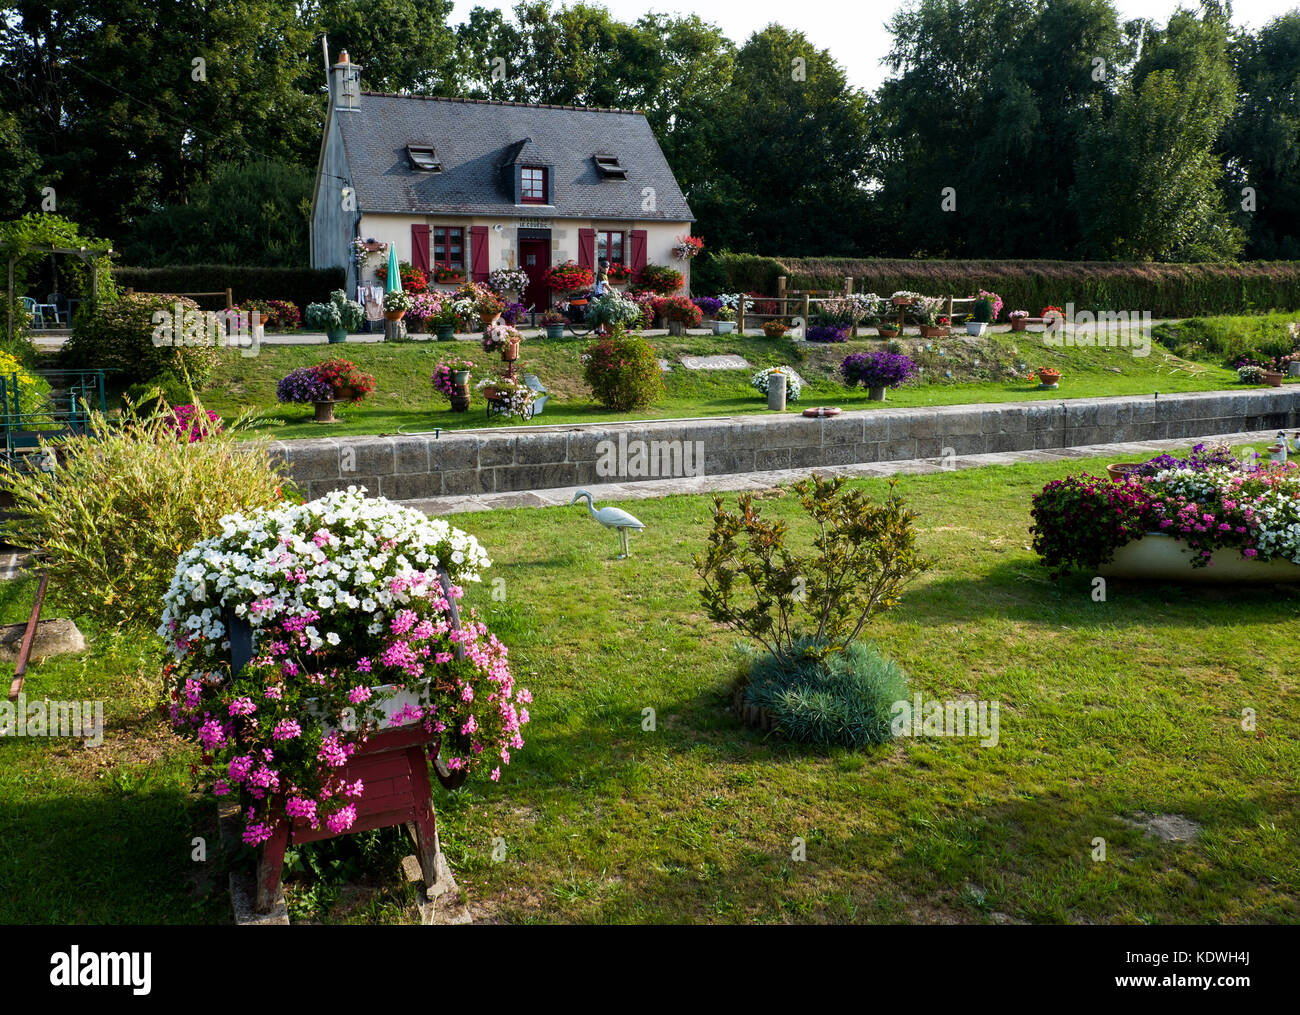 A lock-keeper's cottage on the Nantes-Brest canal  between Josselin and Pontivy,  Seen while explore the Velodyssey - Stock Image